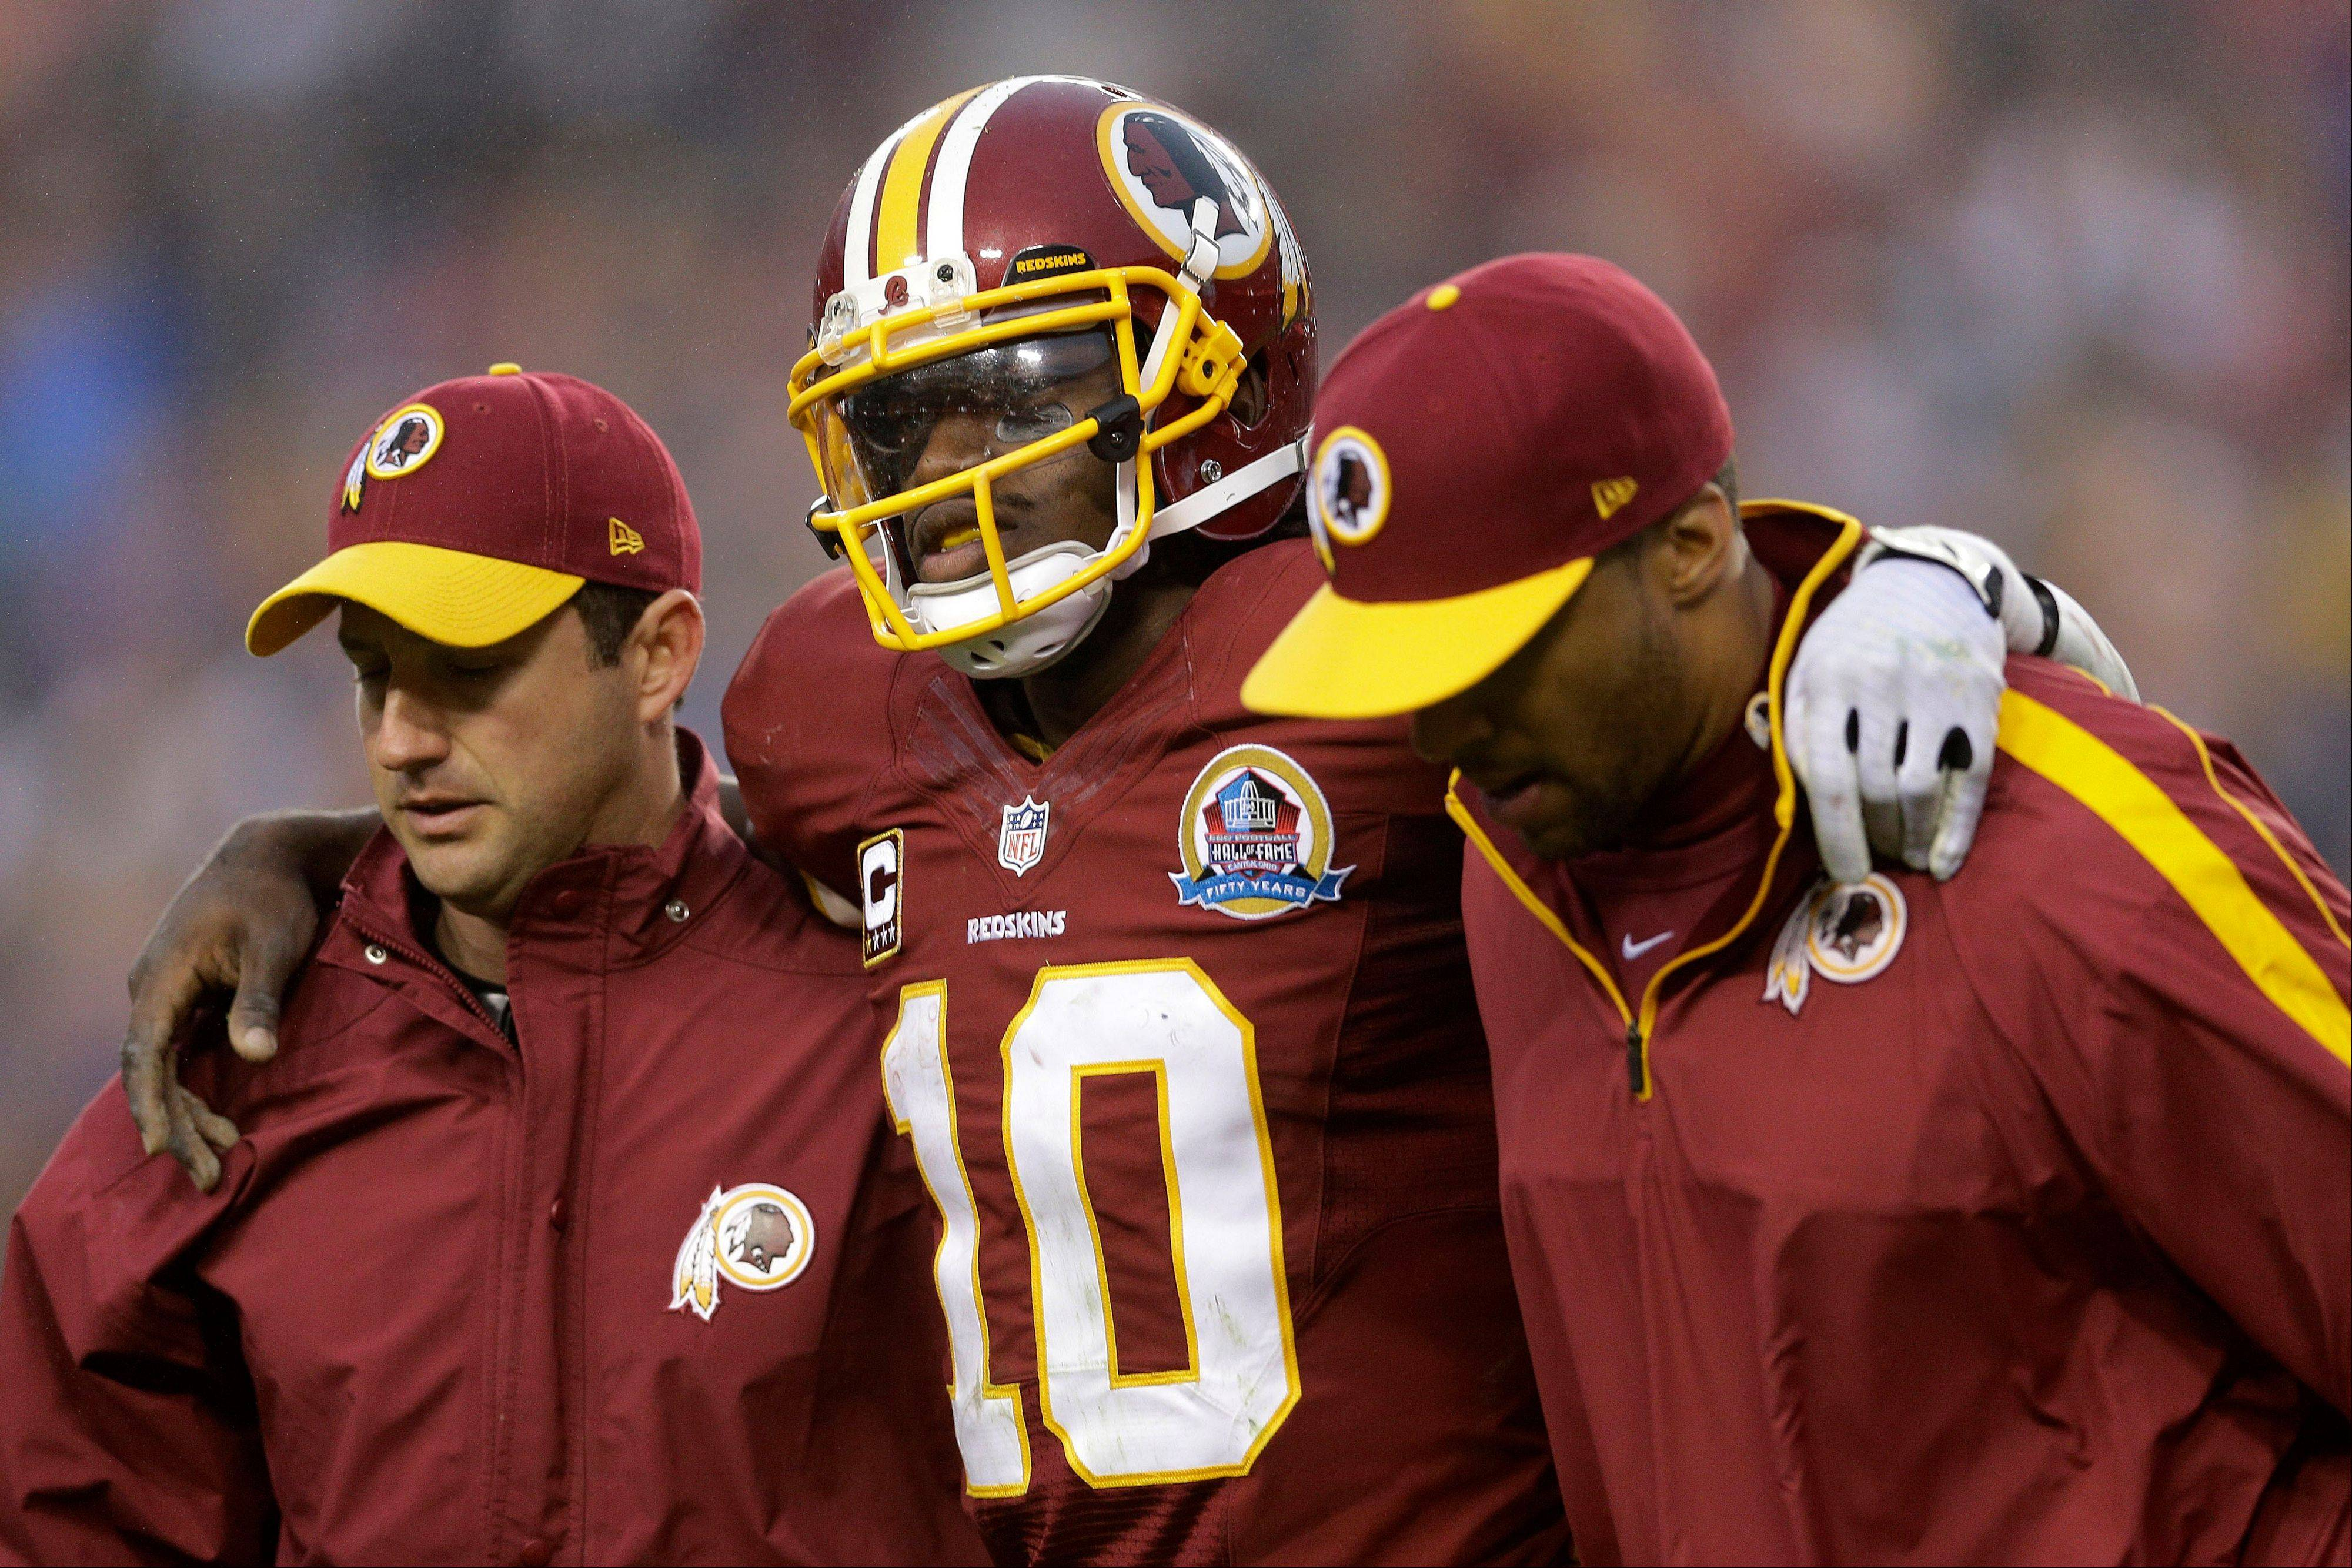 Washington Redskins quarterback Robert Griffin III is helped off the filed after an injury during the second half of an NFL football game against the Baltimore Ravens in Landover, Md., Sunday, Dec. 9, 2012.